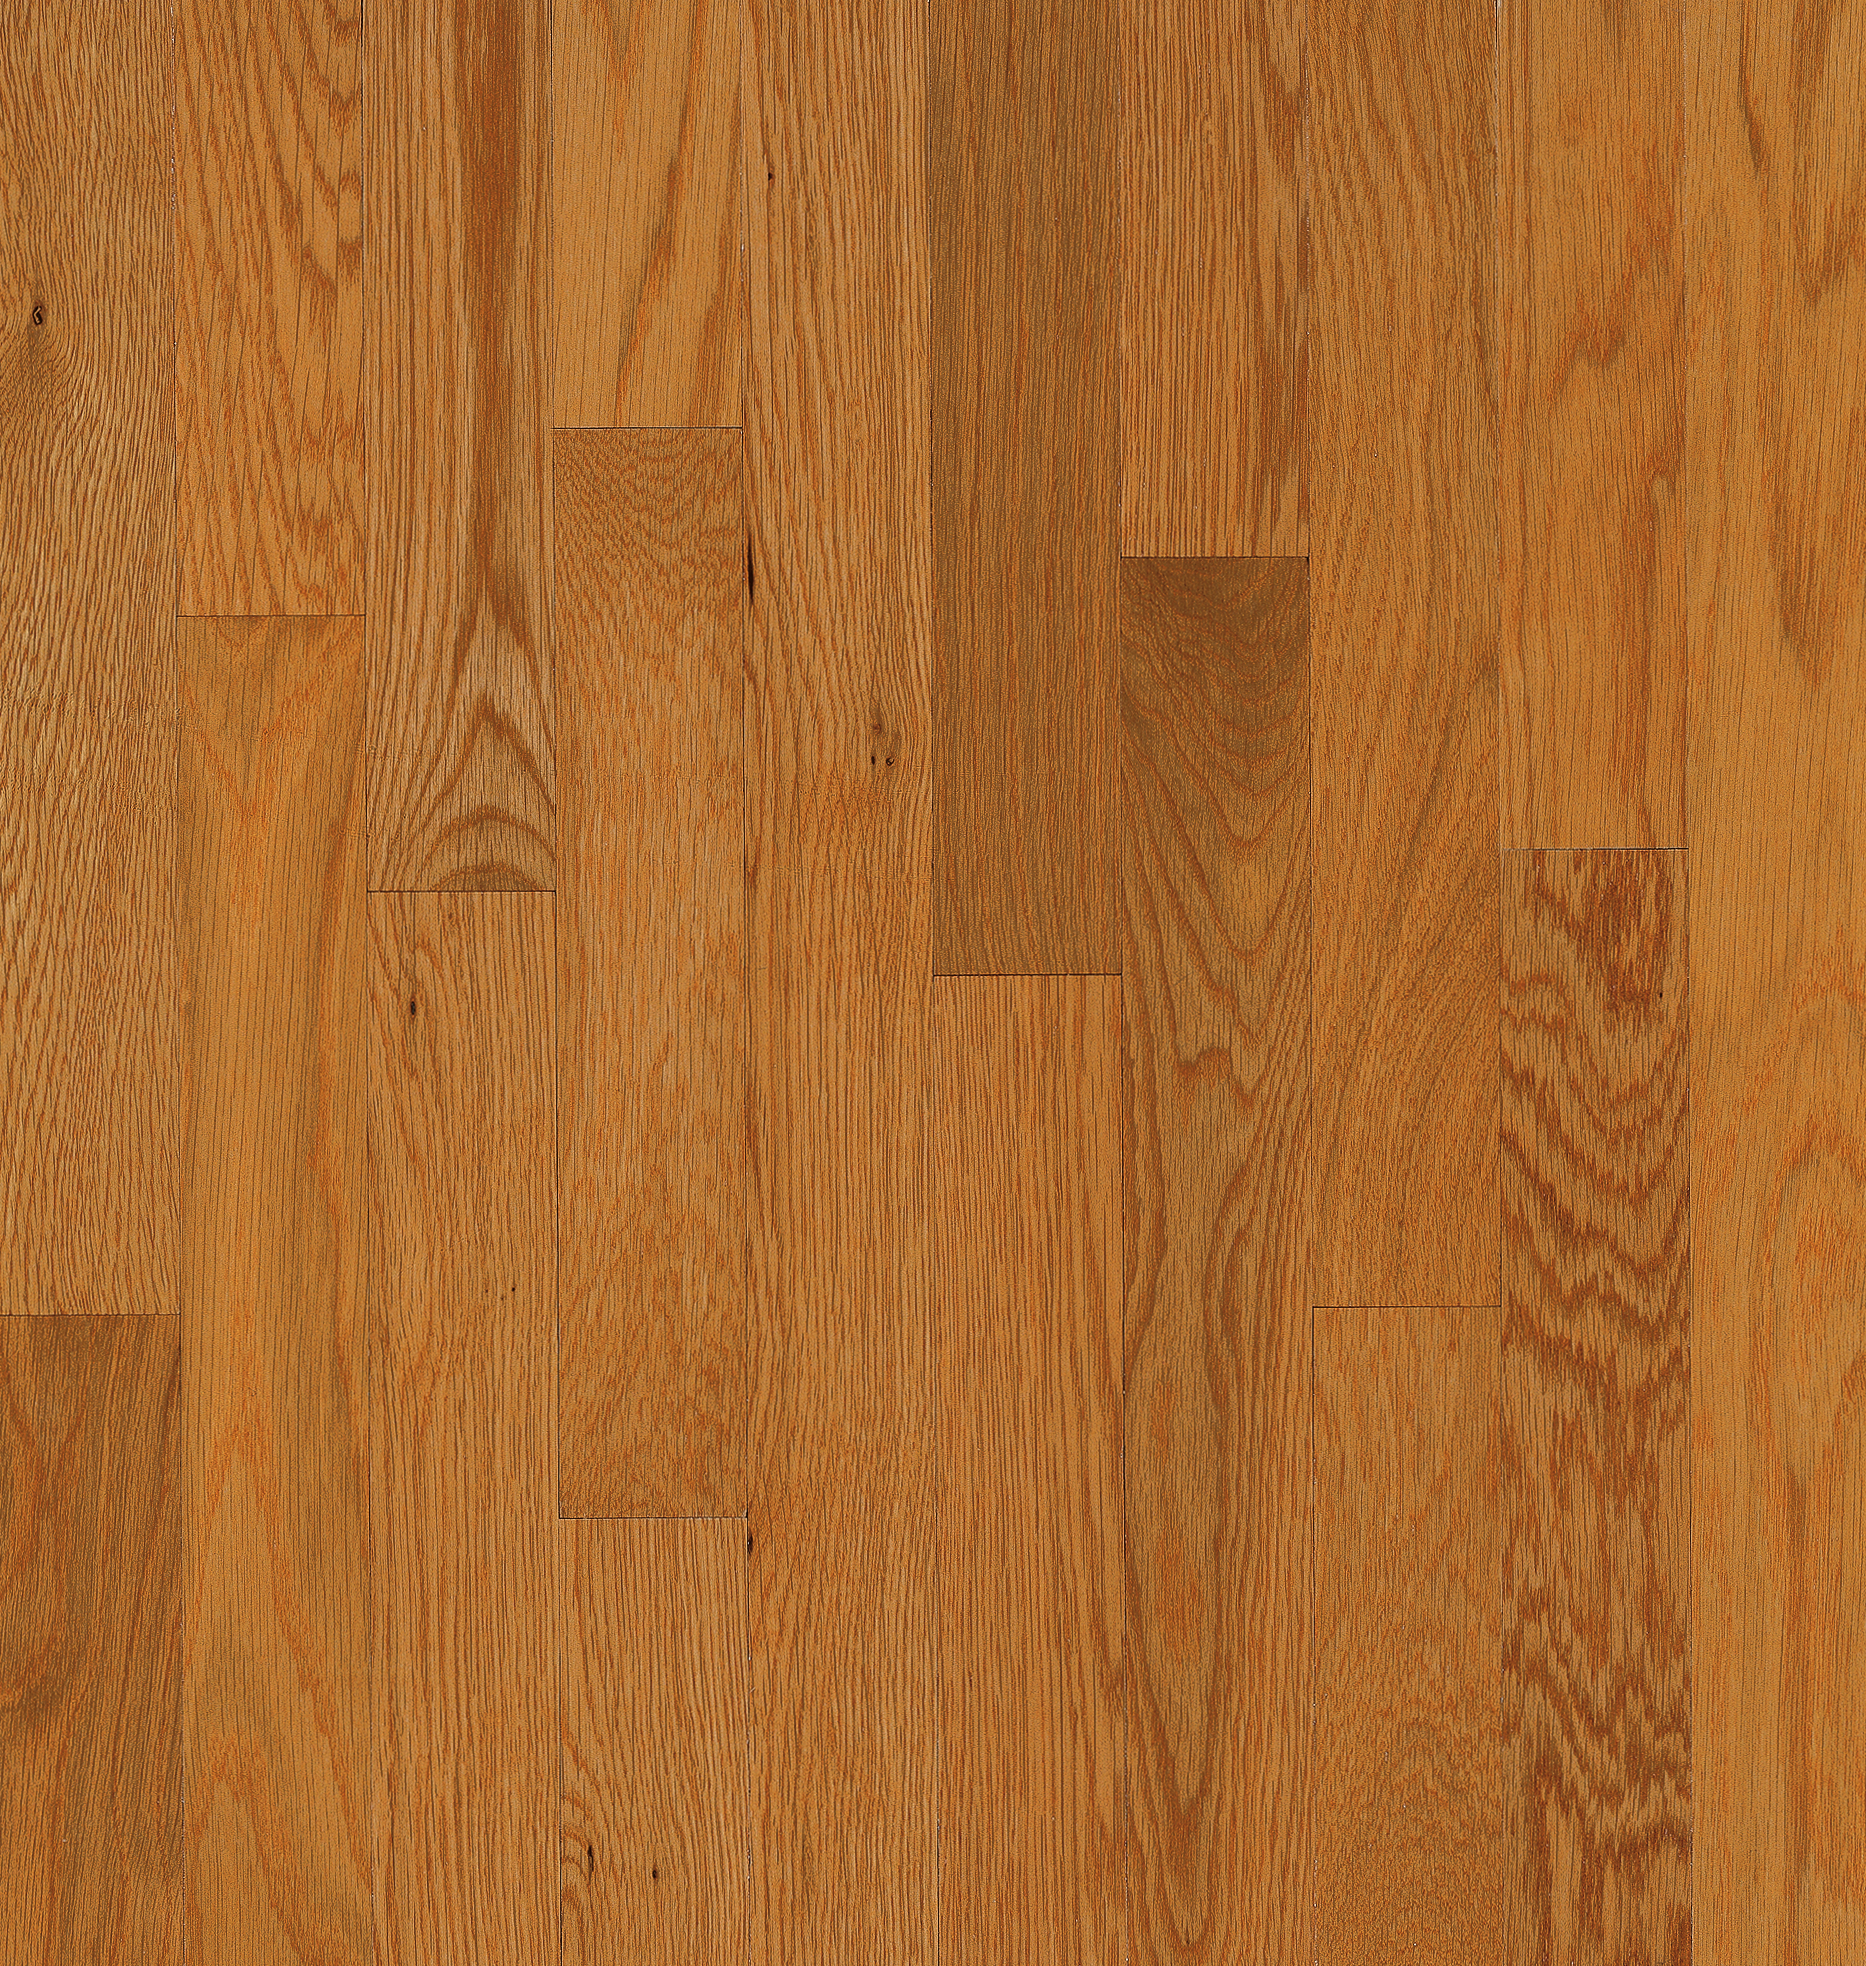 Natural Choice Butter Rum/Toffee Solid Hardwood C5216LG